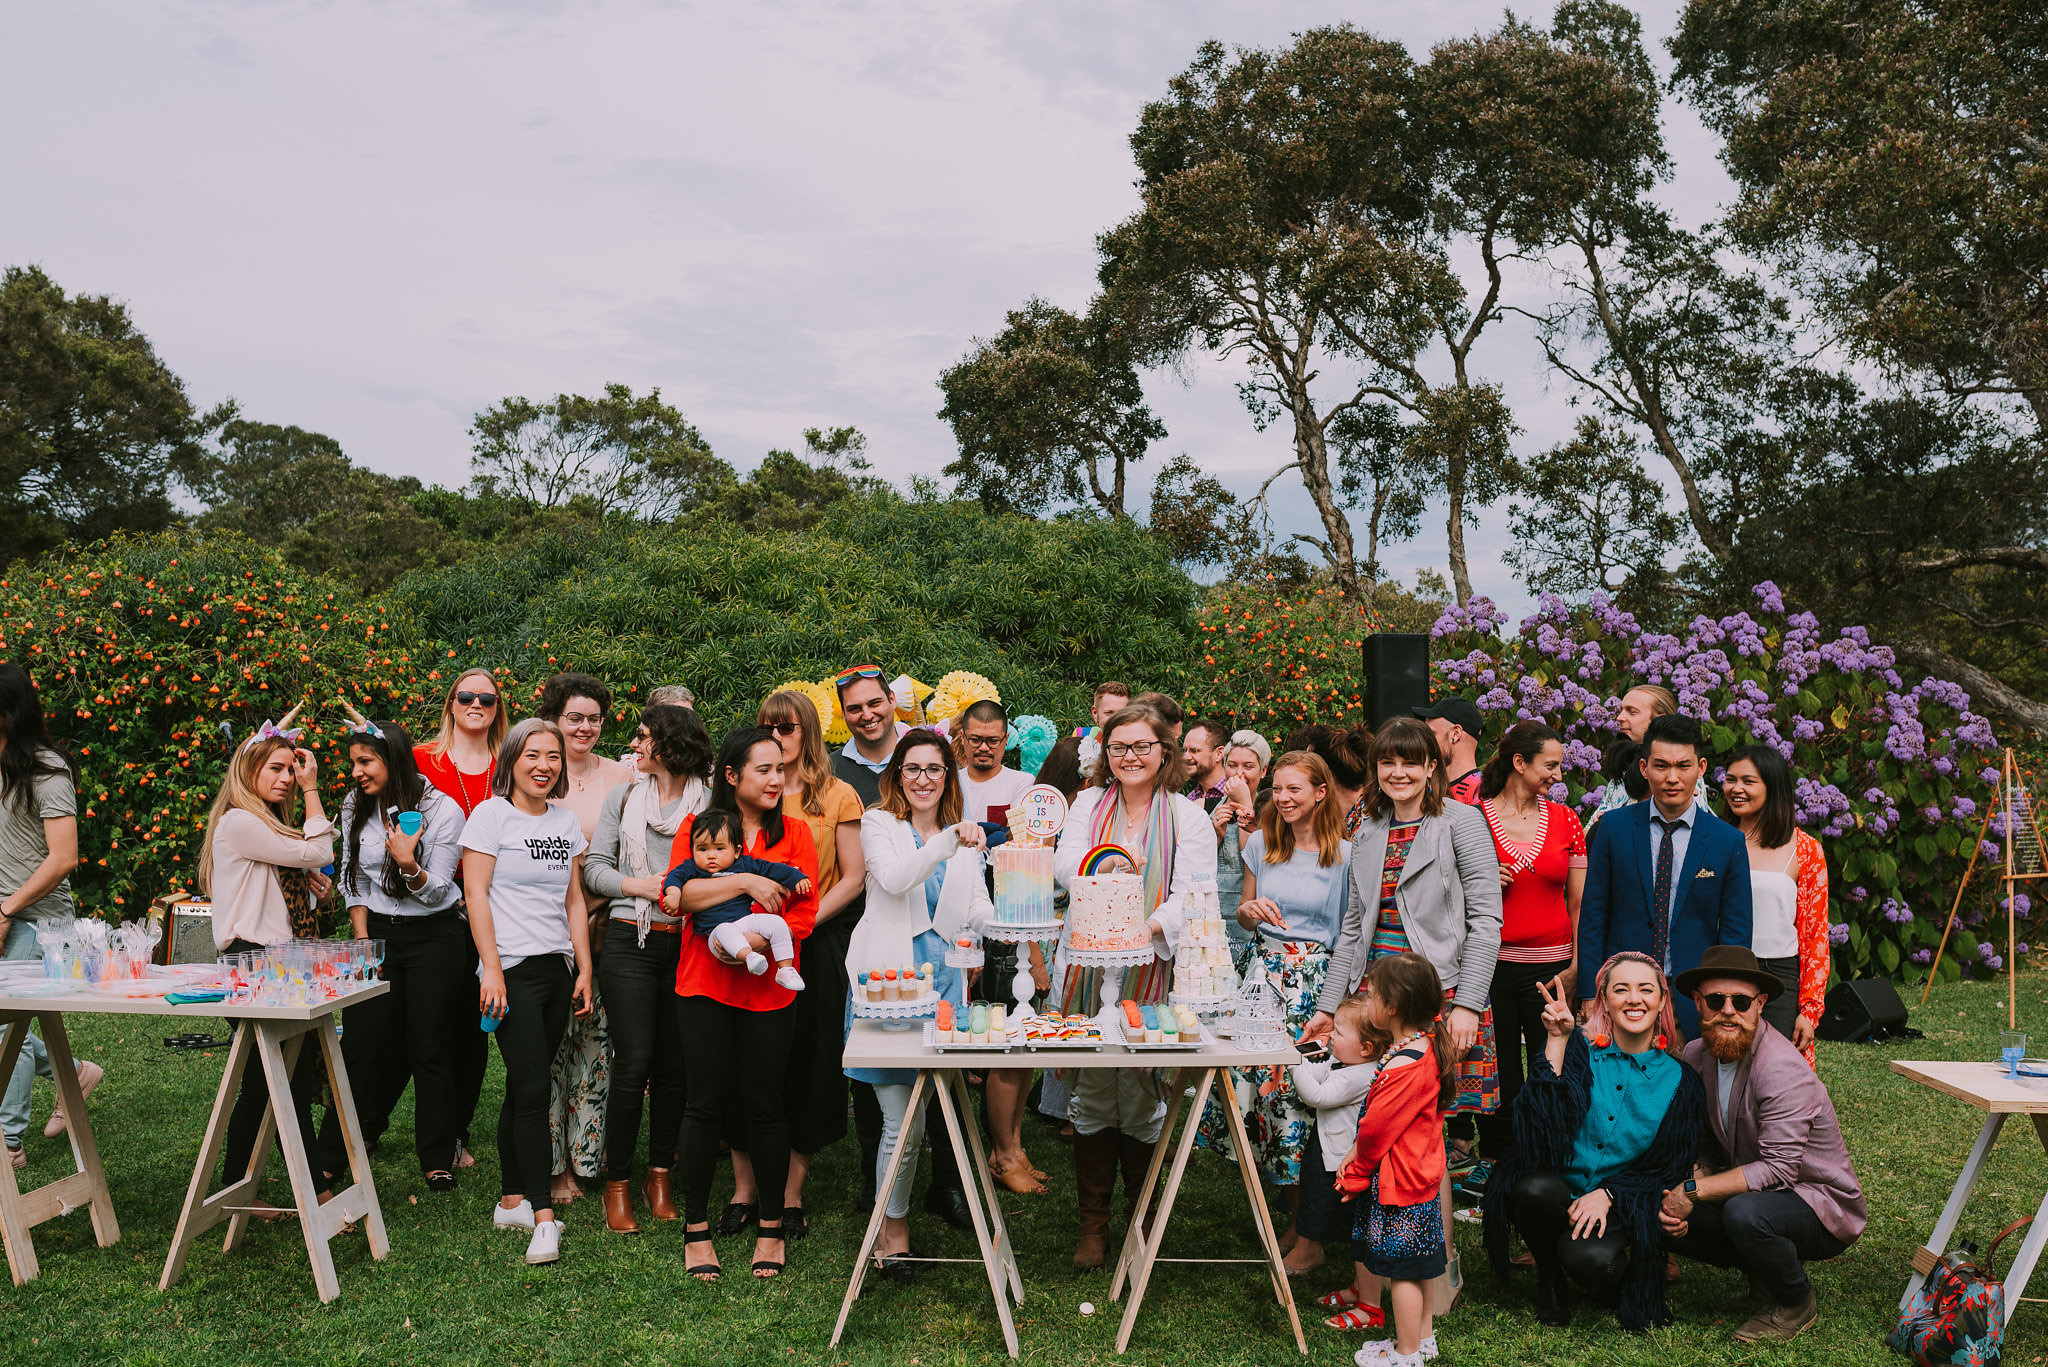 The Sydney TWE community gathered together in support of Marriage Equality.Photo by Angus Porter Photography